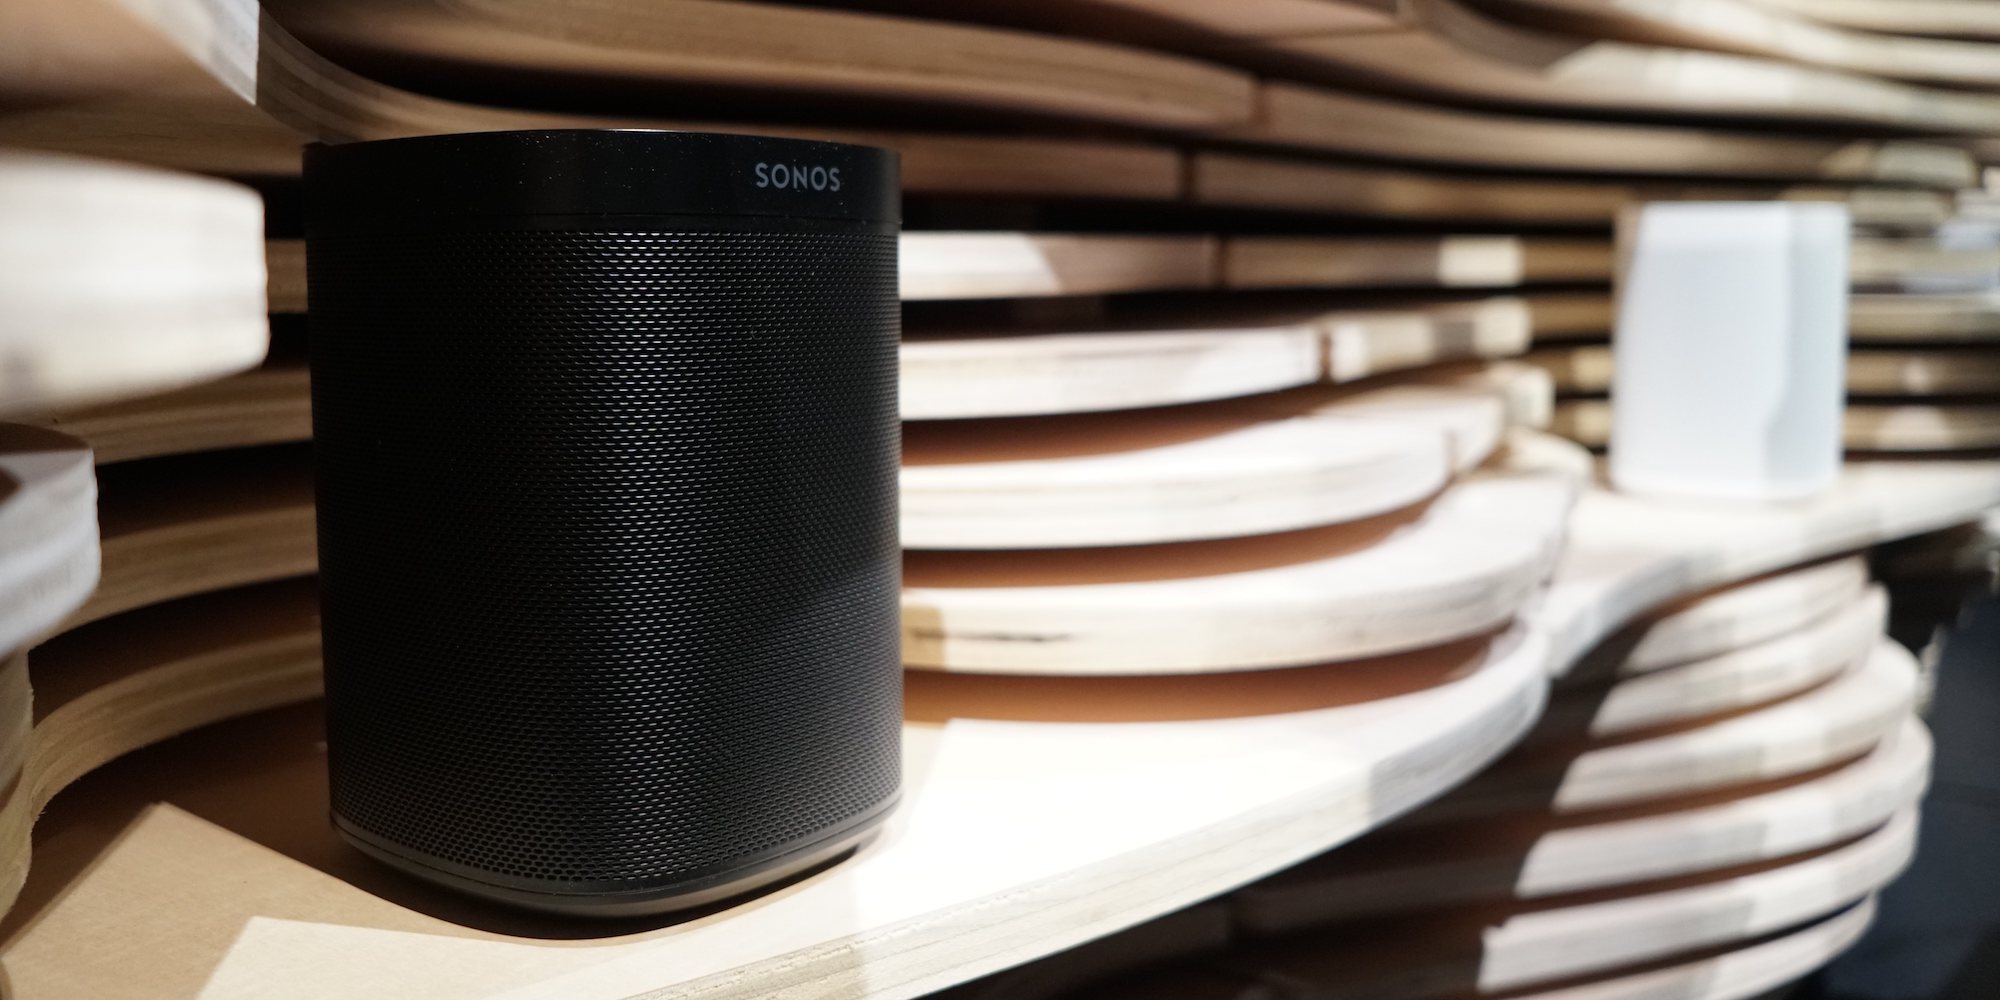 How to update Sonos speakers for AirPlay 2 and HomeKit